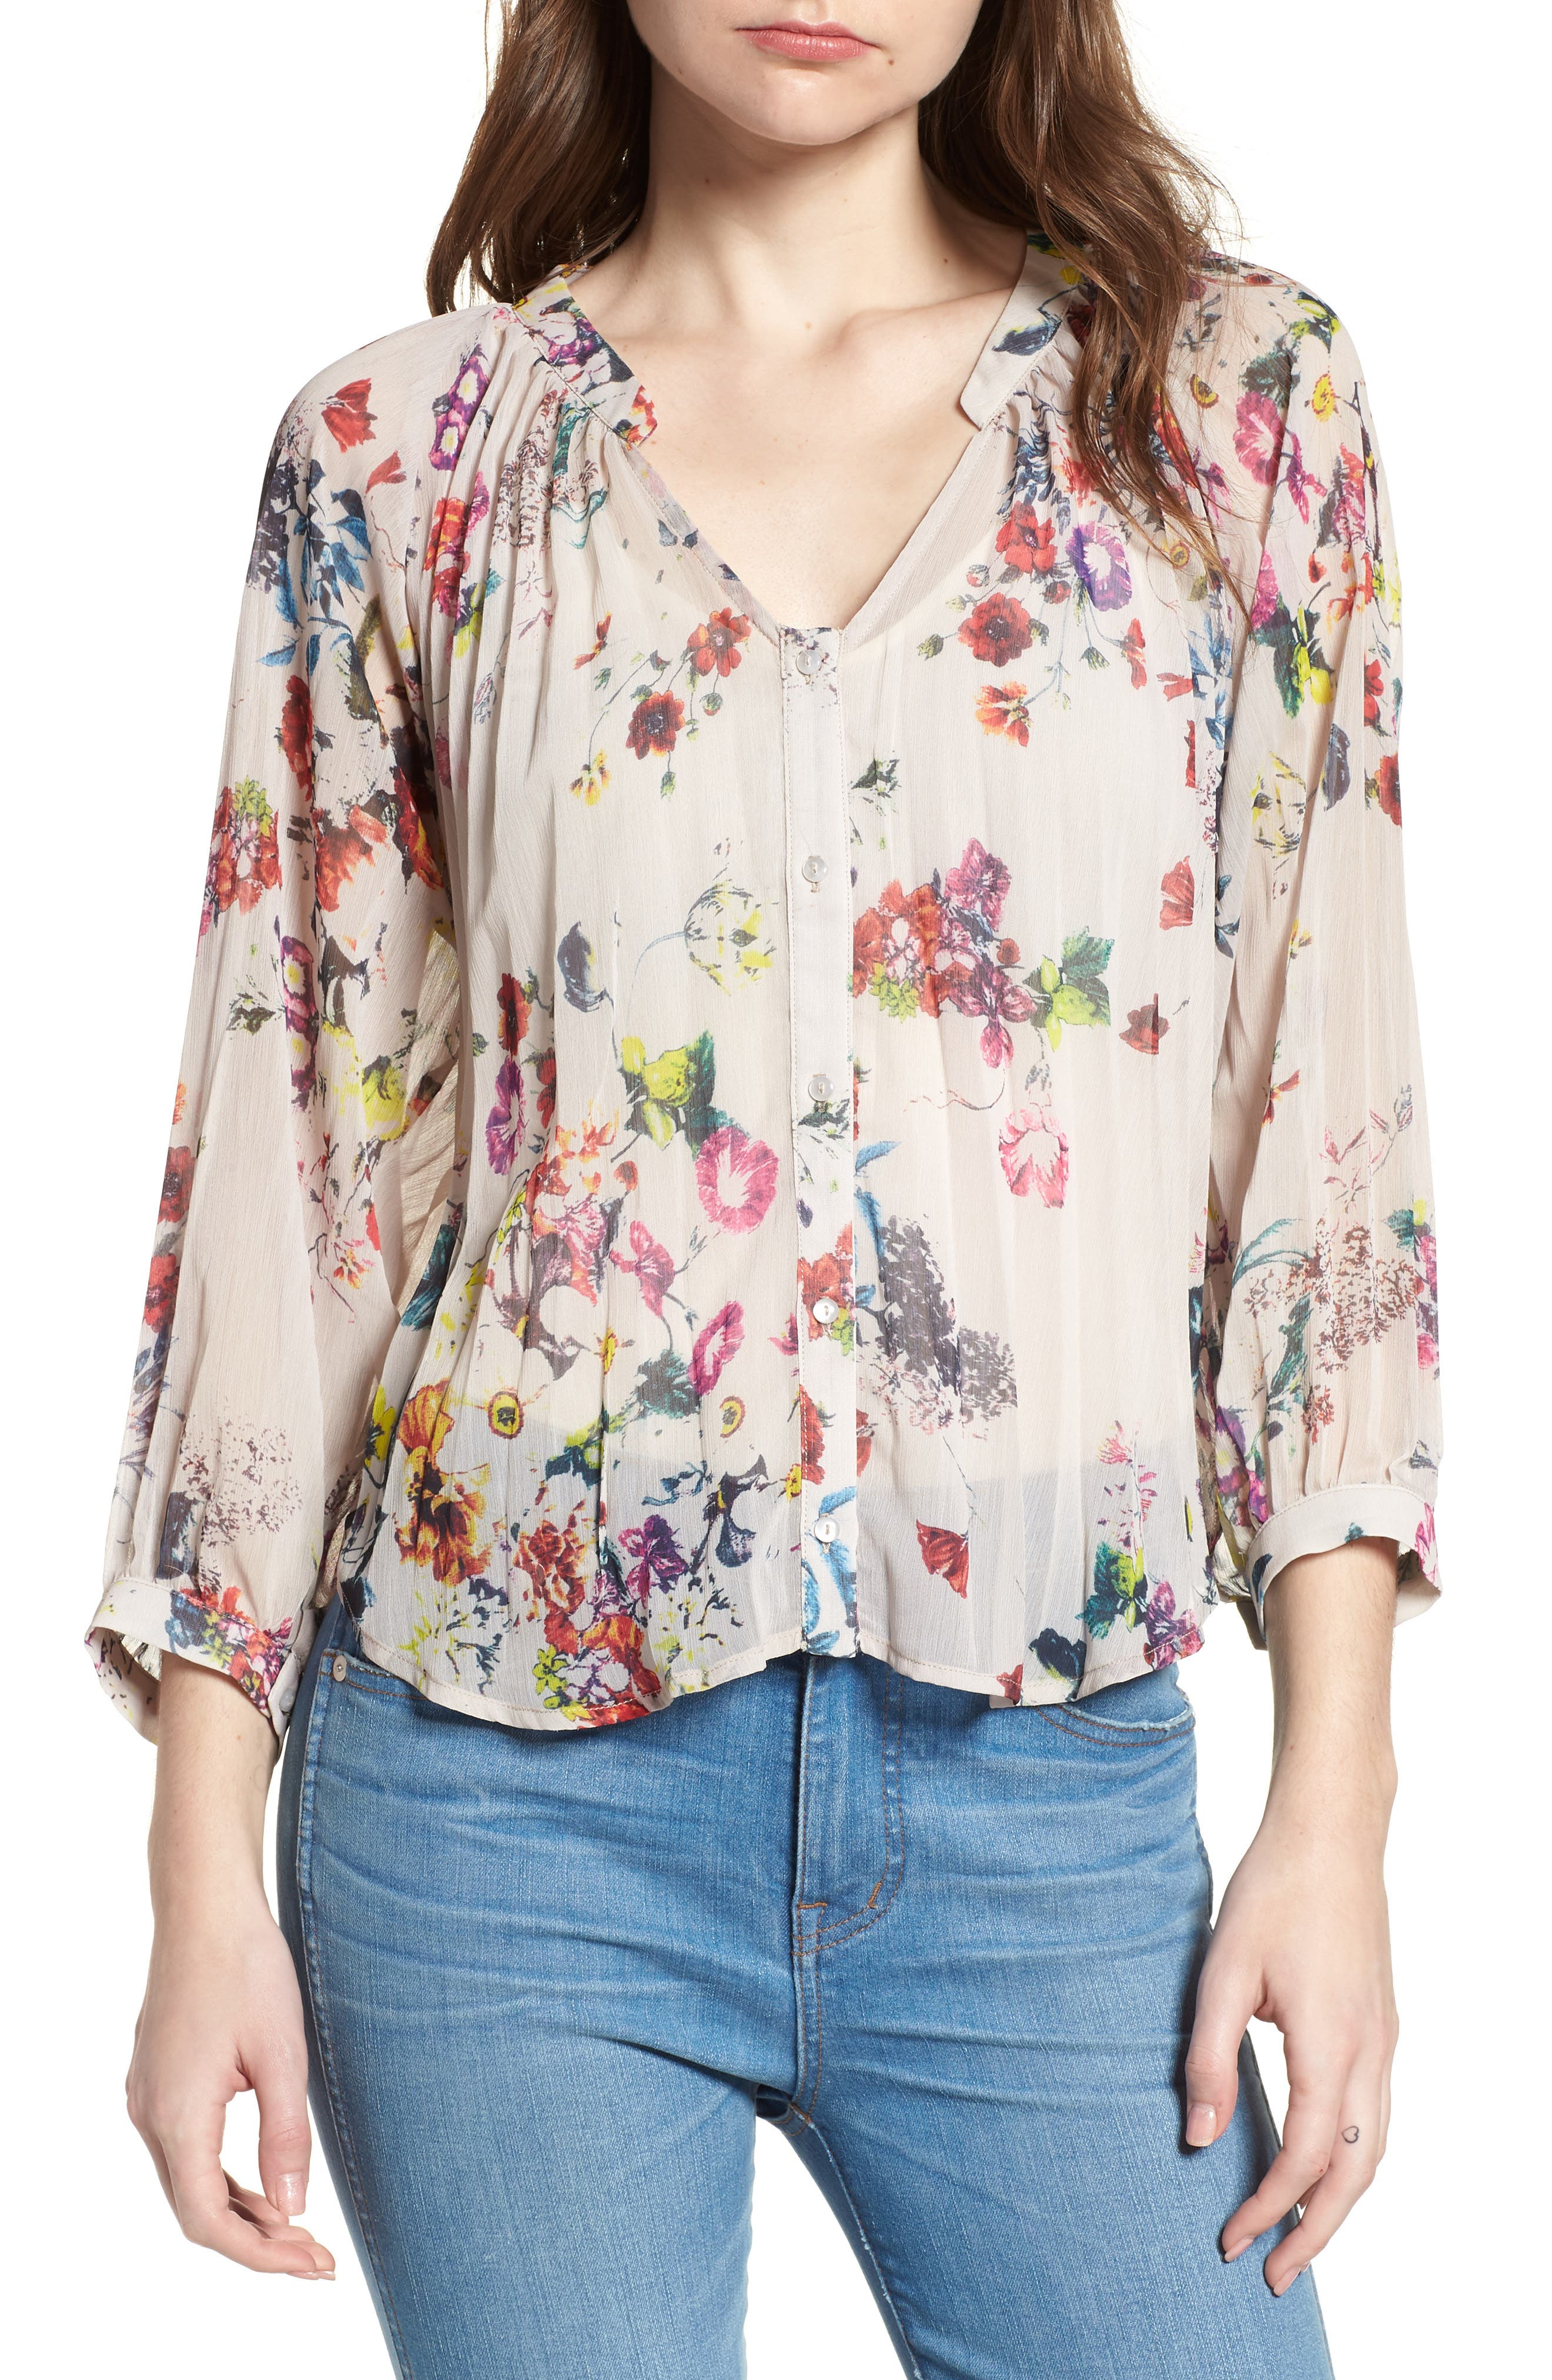 Bishop + Young Floral Pleated Top,                             Main thumbnail 1, color,                             900